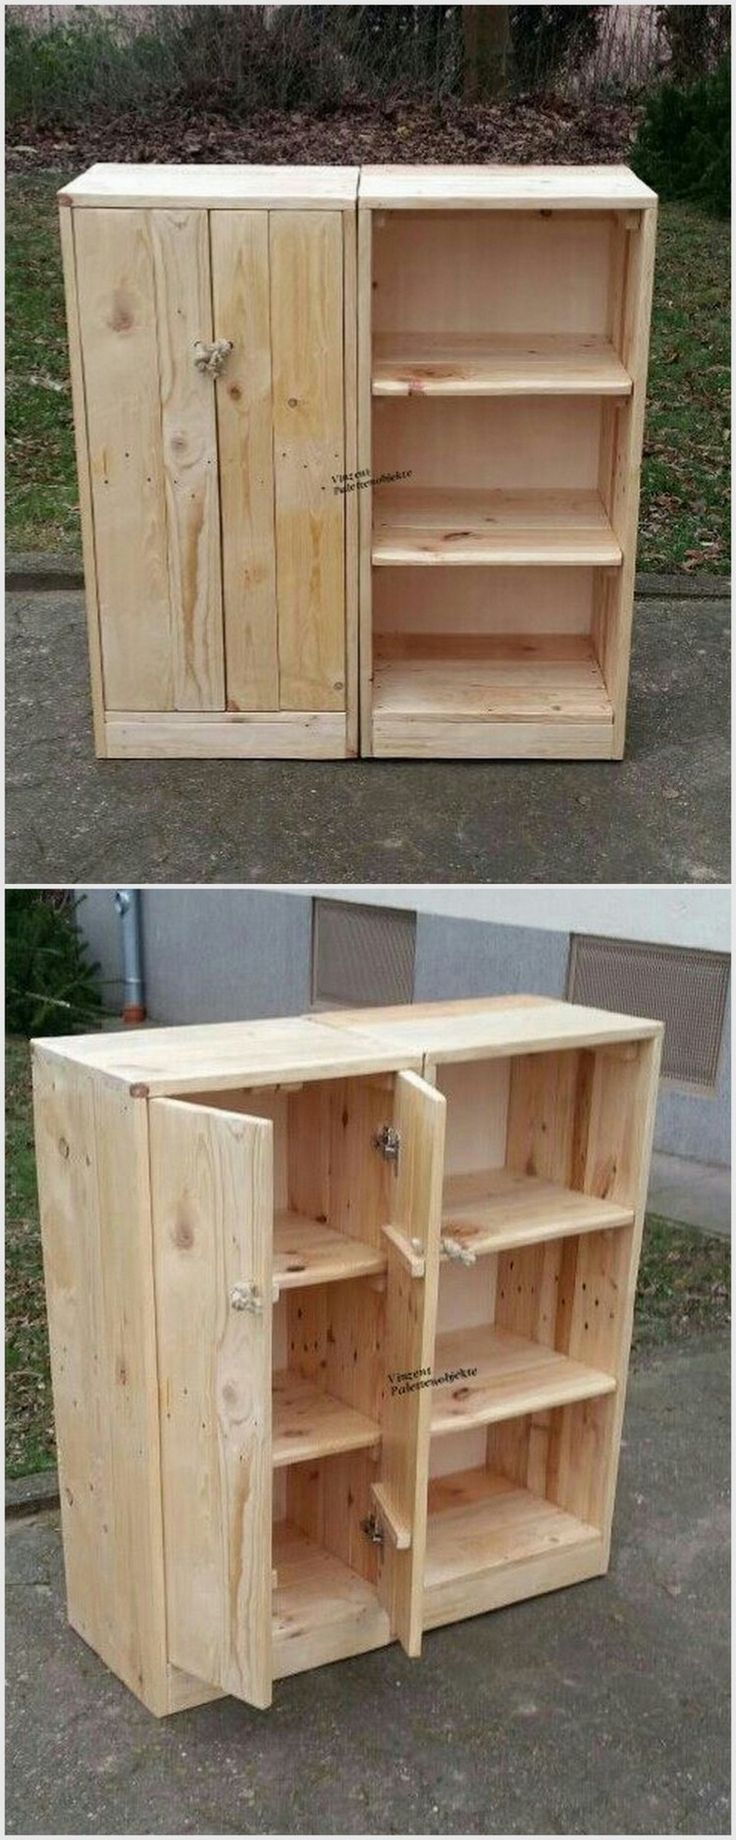 Image Result For Plan Kitchen Wall Unit Built From Pallets  # Muebles Cin Tarimas